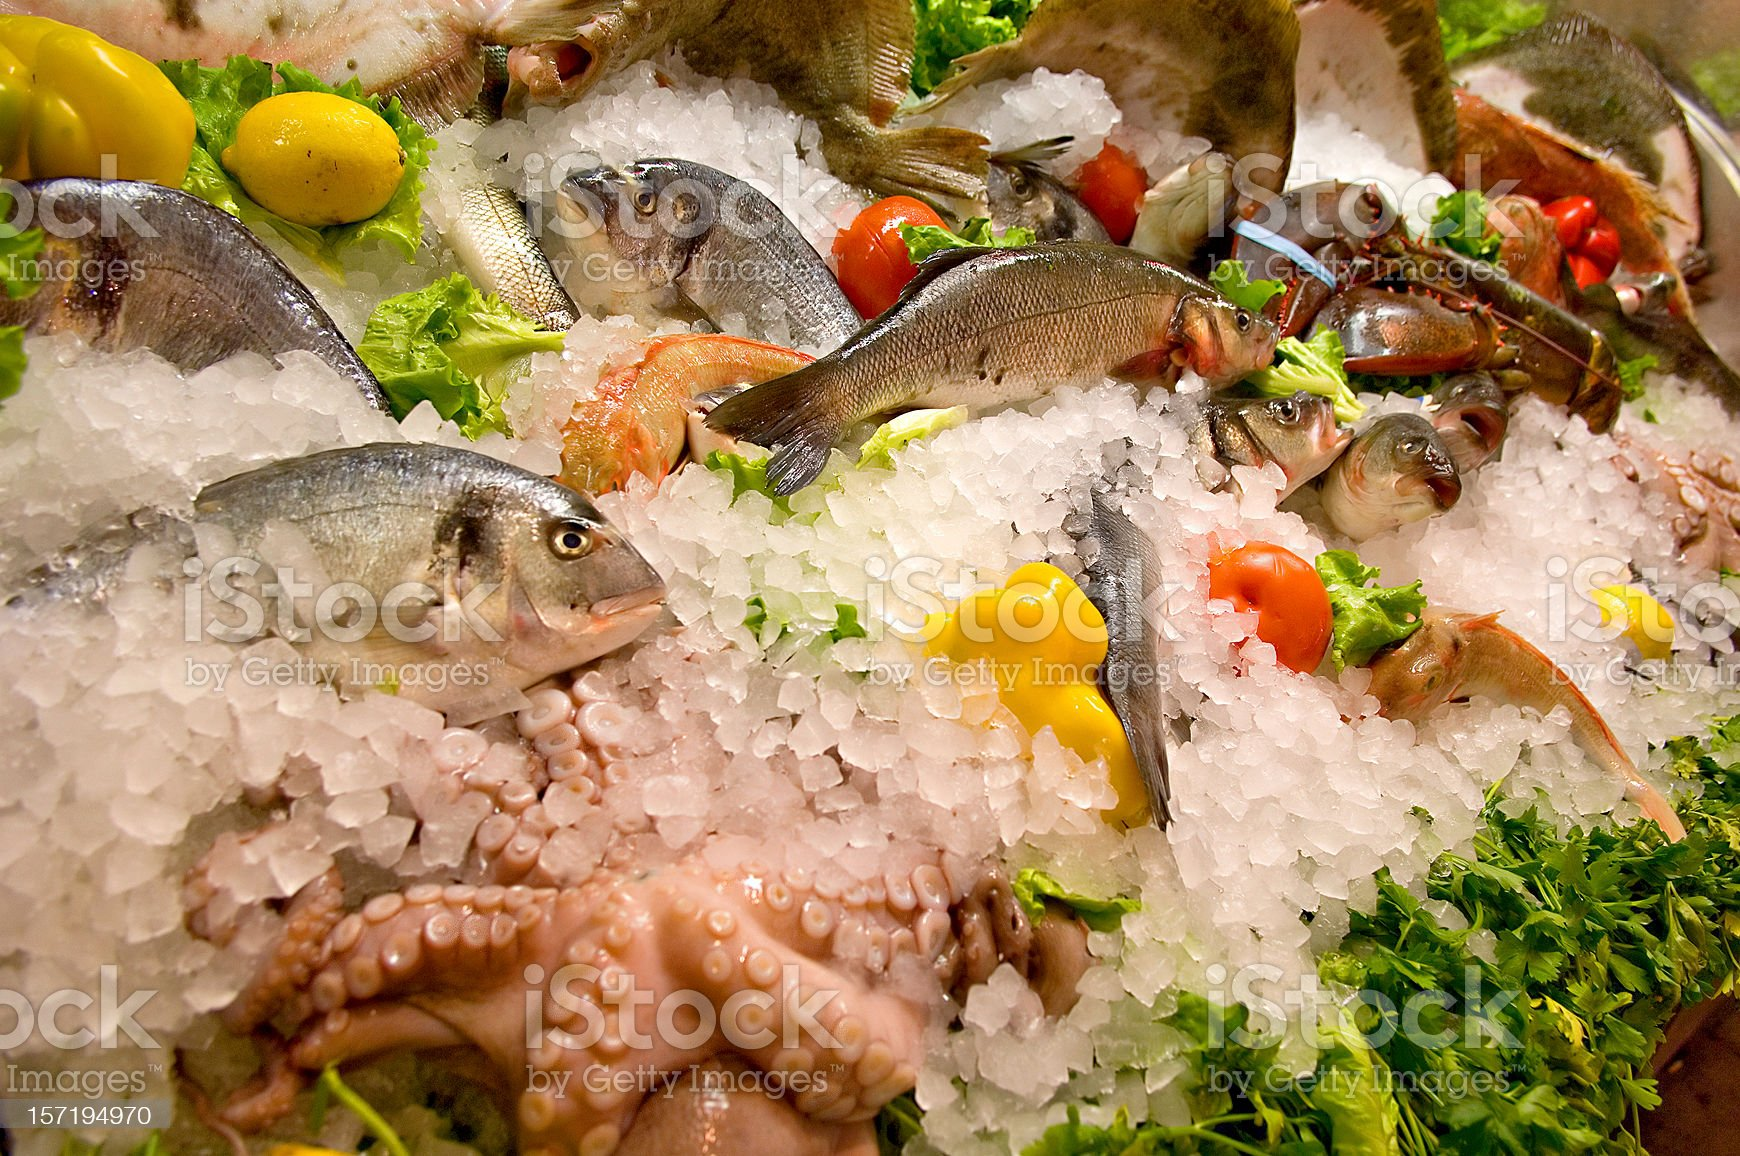 Fresh fish on packed ice with produce royalty-free stock photo